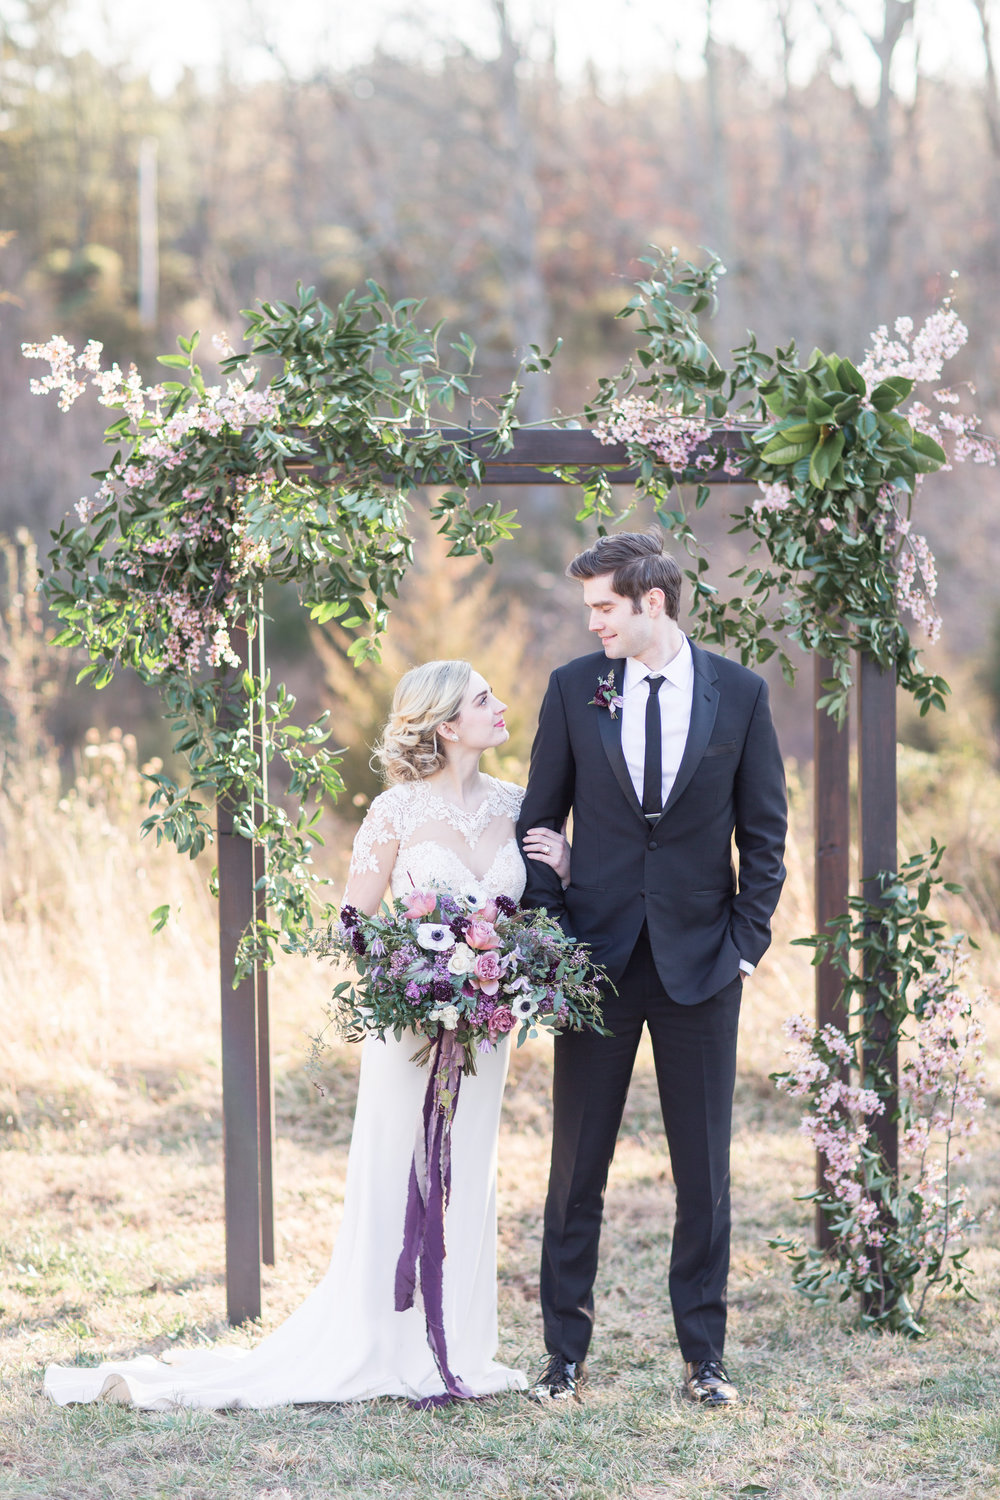 7.5 foot Wooden Arch